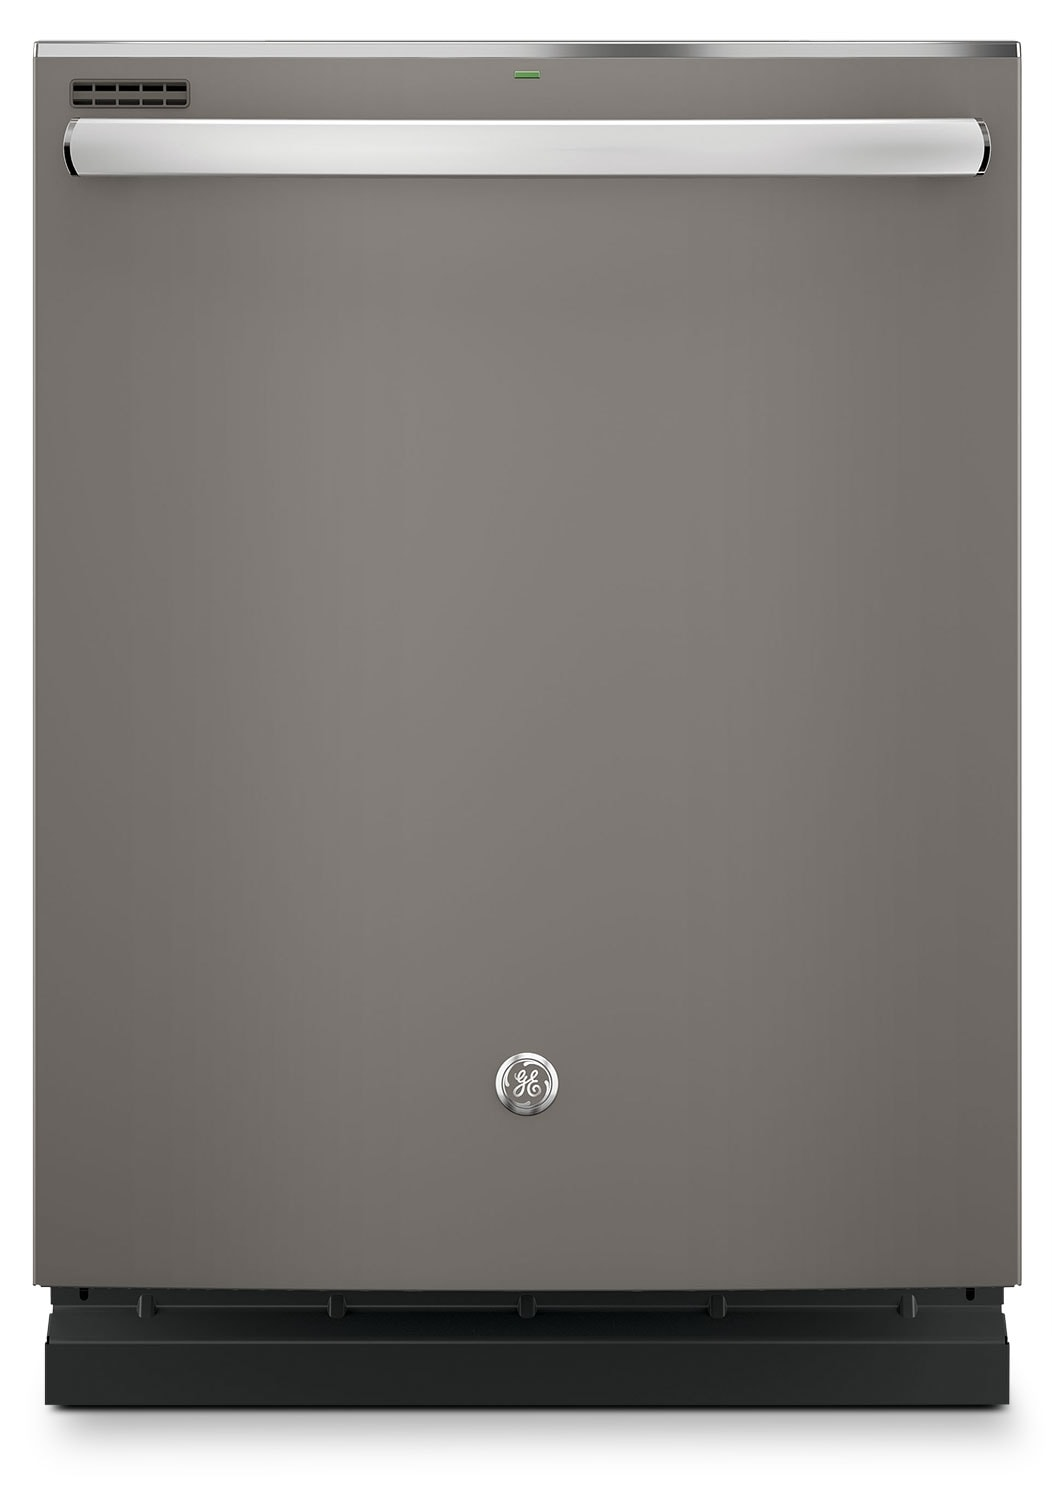 GE Built-in Tall Tub Dishwasher with Hidden Controls – Slate